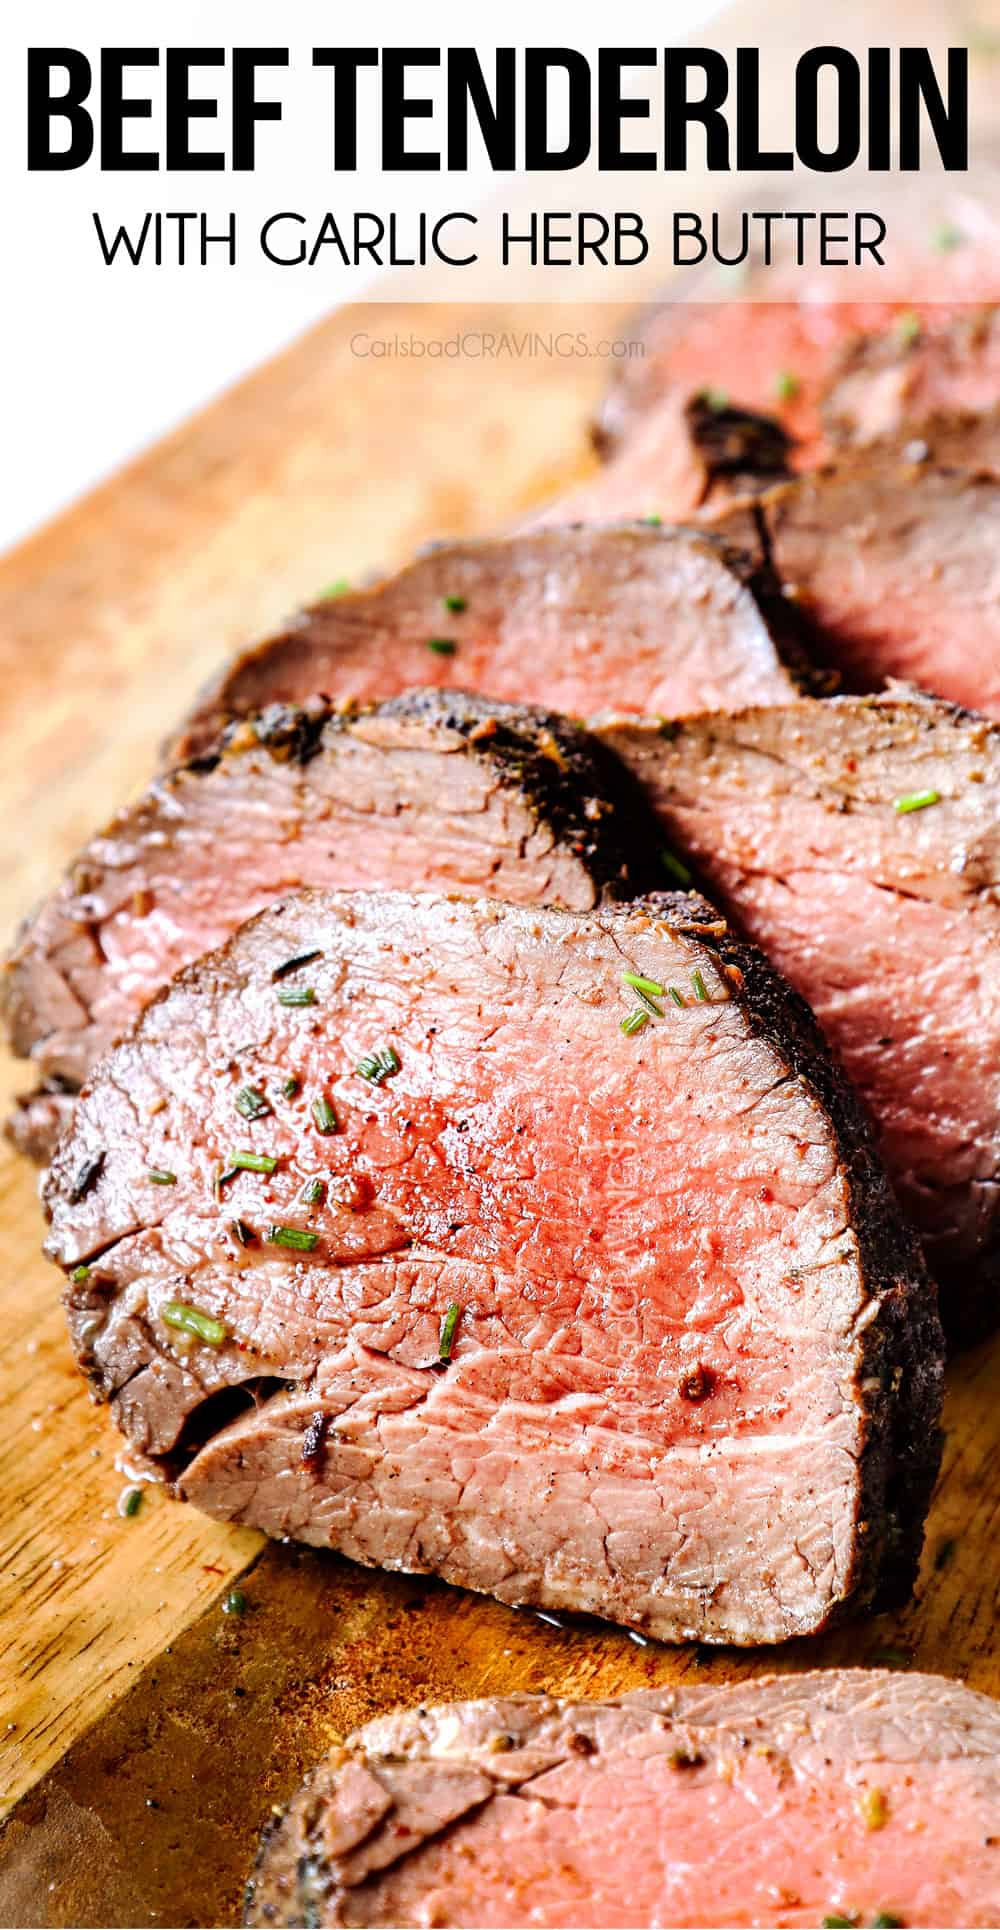 up close of beef tenderloin sliced in a wood cutting board